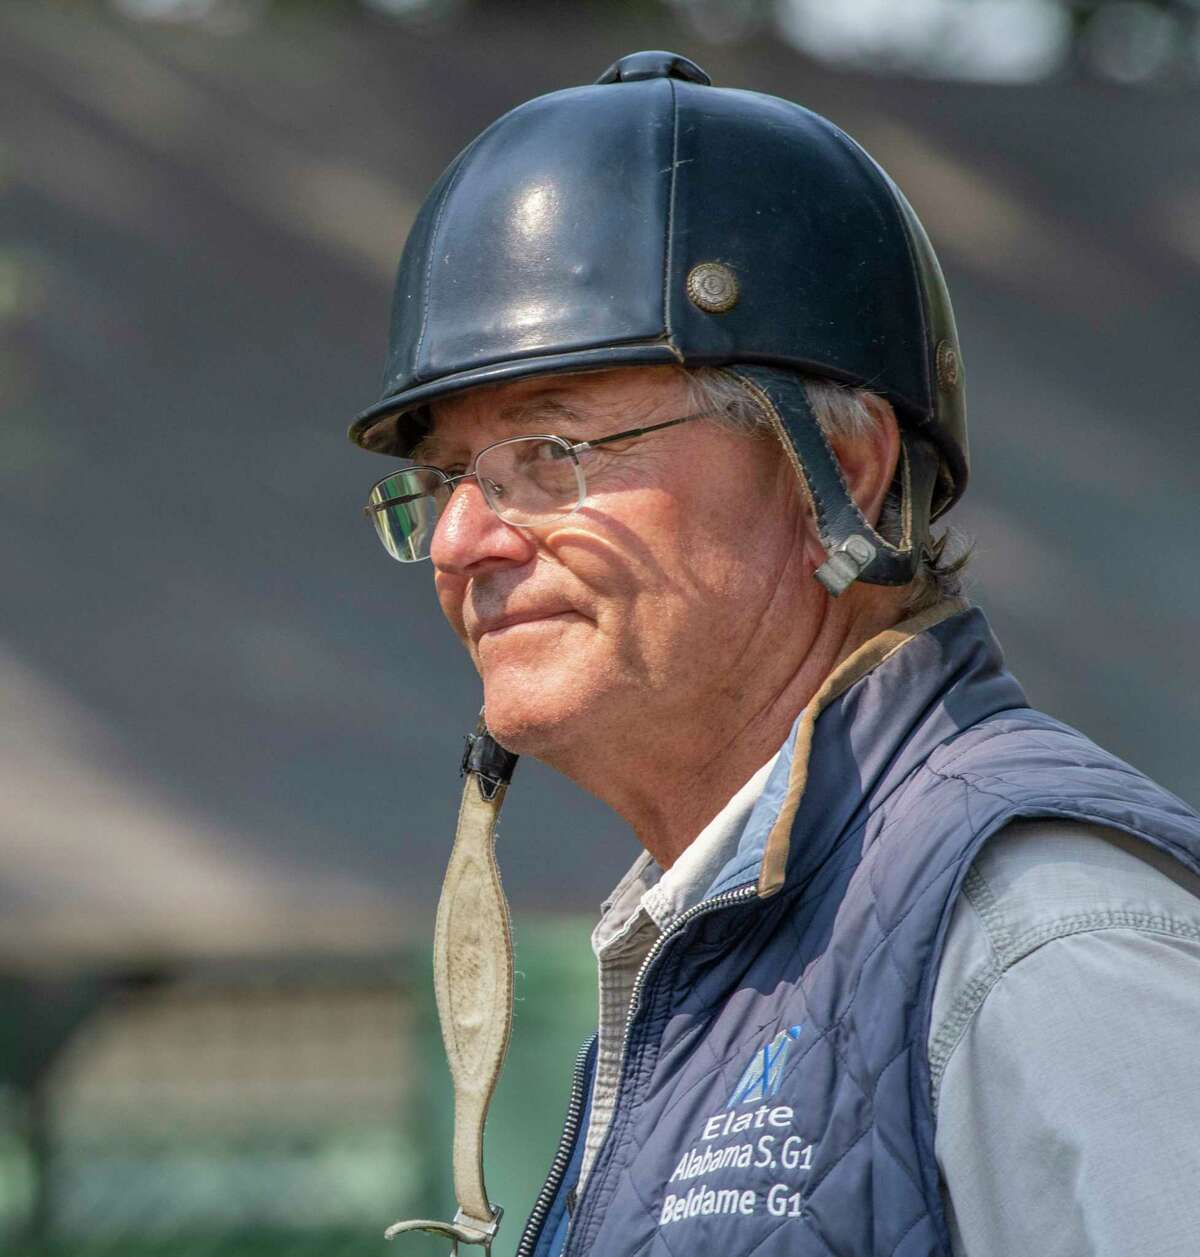 Trainer Bill Mott spoke with the Times Union July 28 2019 at the Saratoga Race Course in Saratoga Springs, N.Y. Photo Special to the Times Union by Skip Dickstein